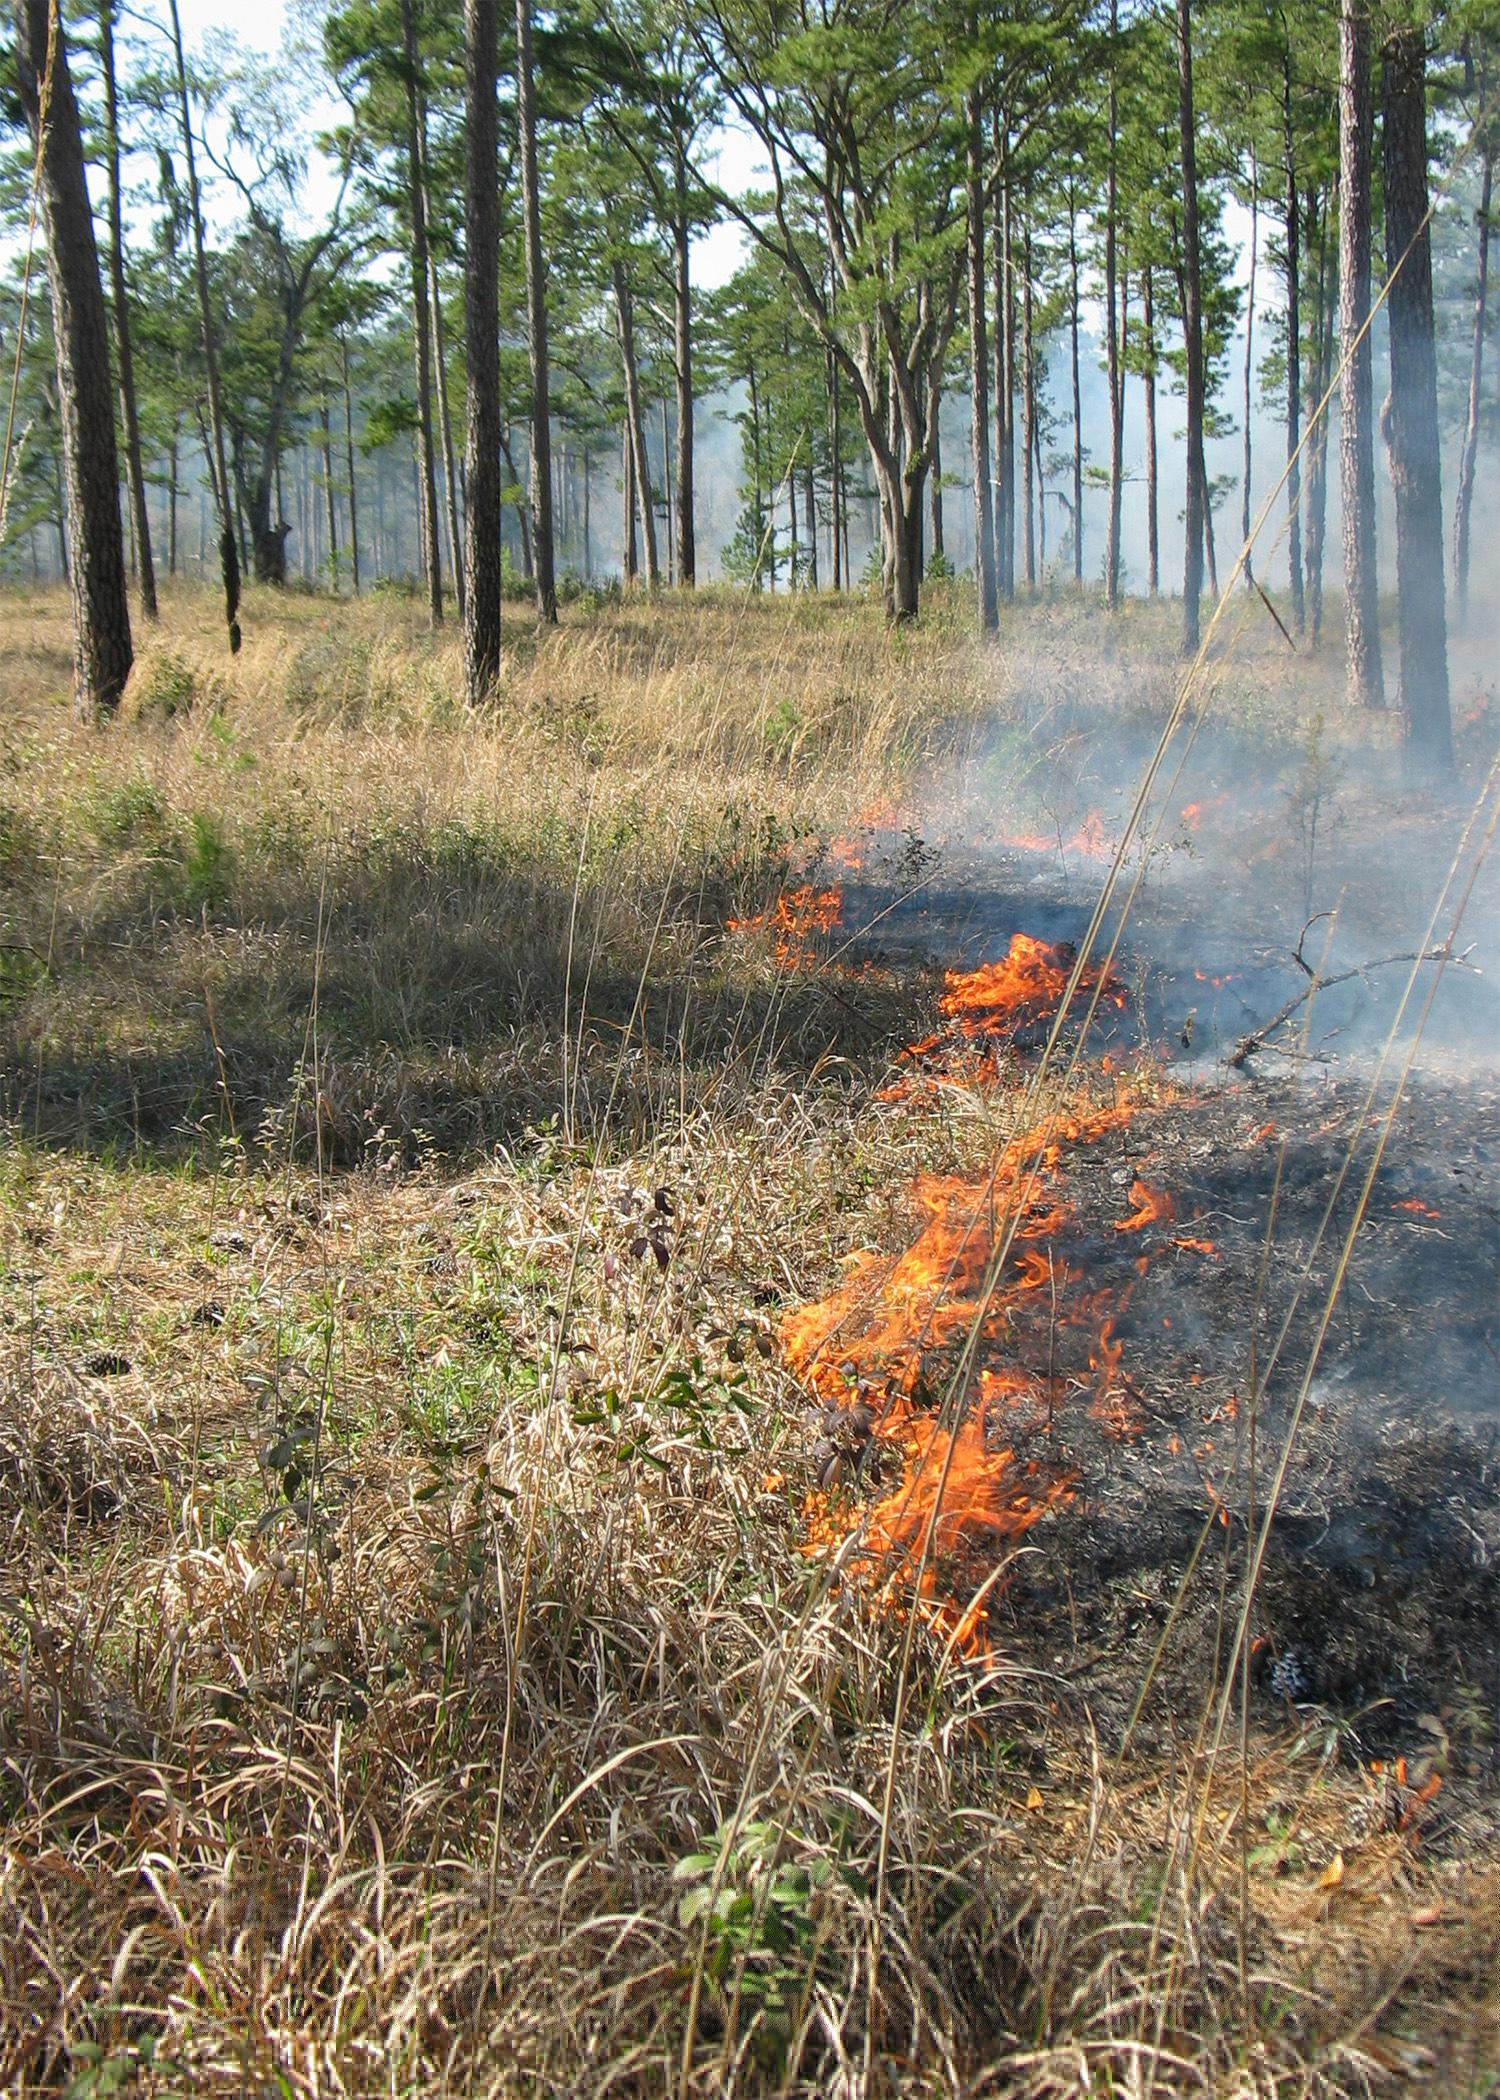 Uncontrolled wild fires can be very destructive to people and wildlife. But not all fire is bad. Biologists and land managers recognize prescribed fire -- intentional, controlled and managed burning -- as a valuable tool for creating habitat for many plants and animals.